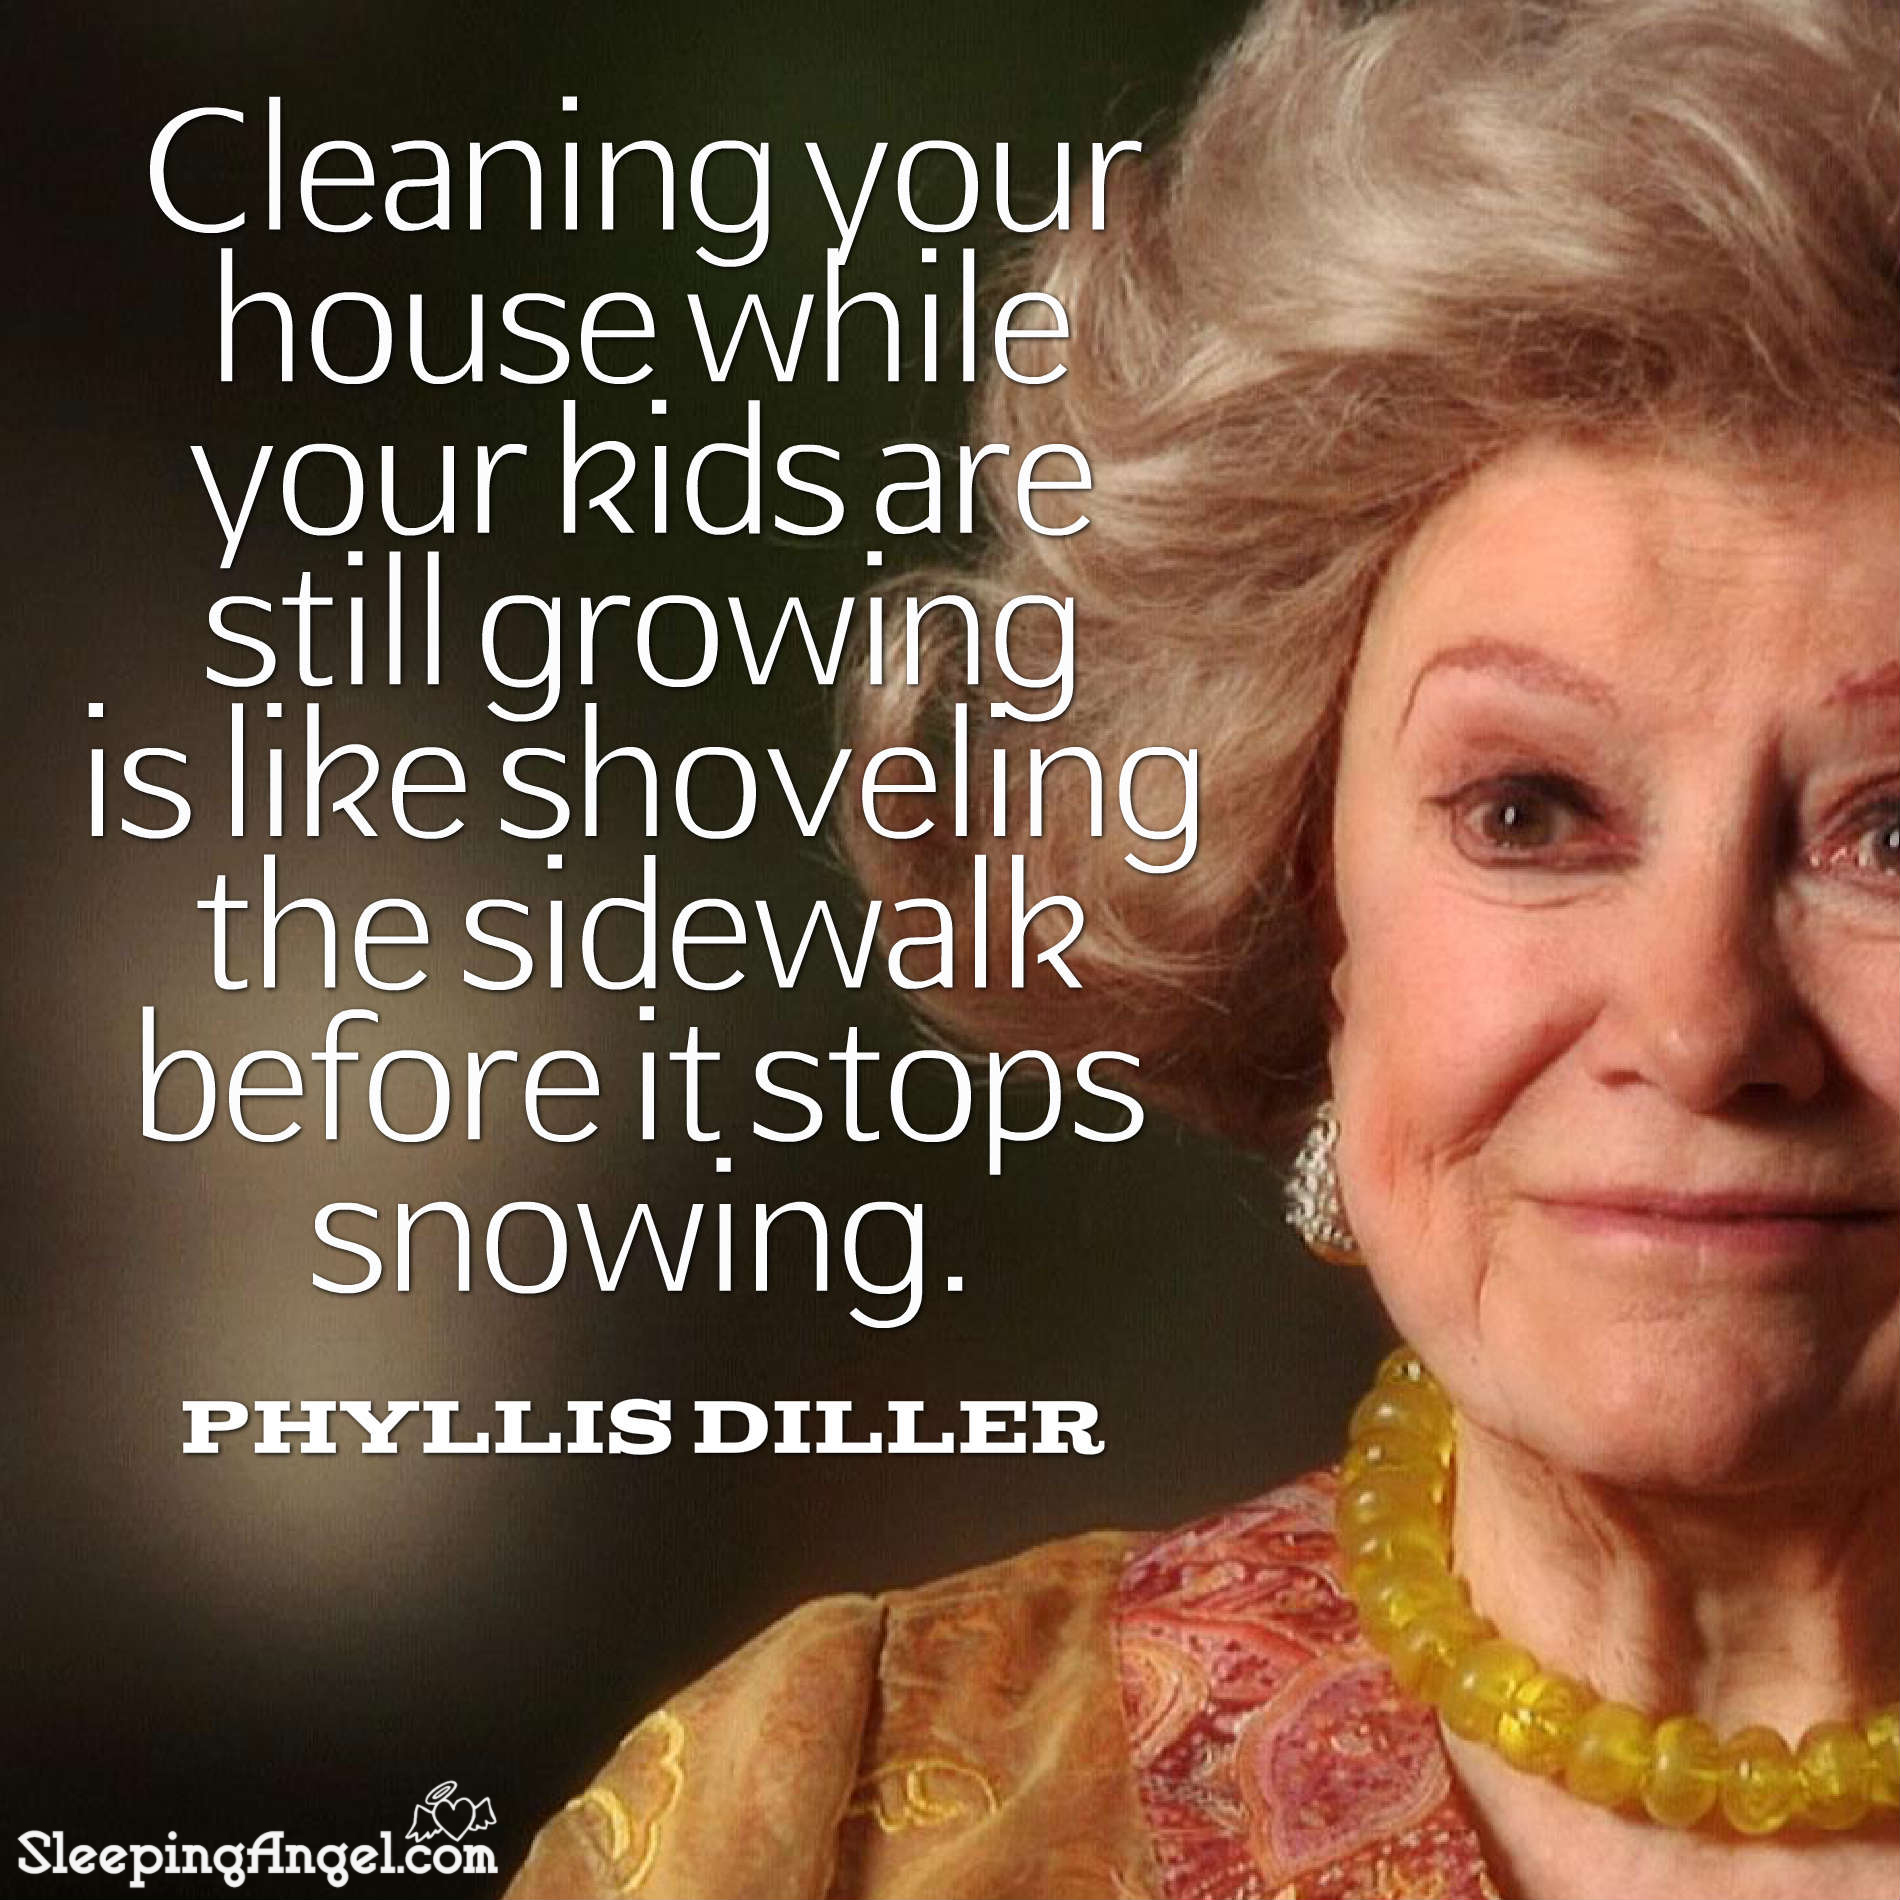 Phyllis Diller Quote